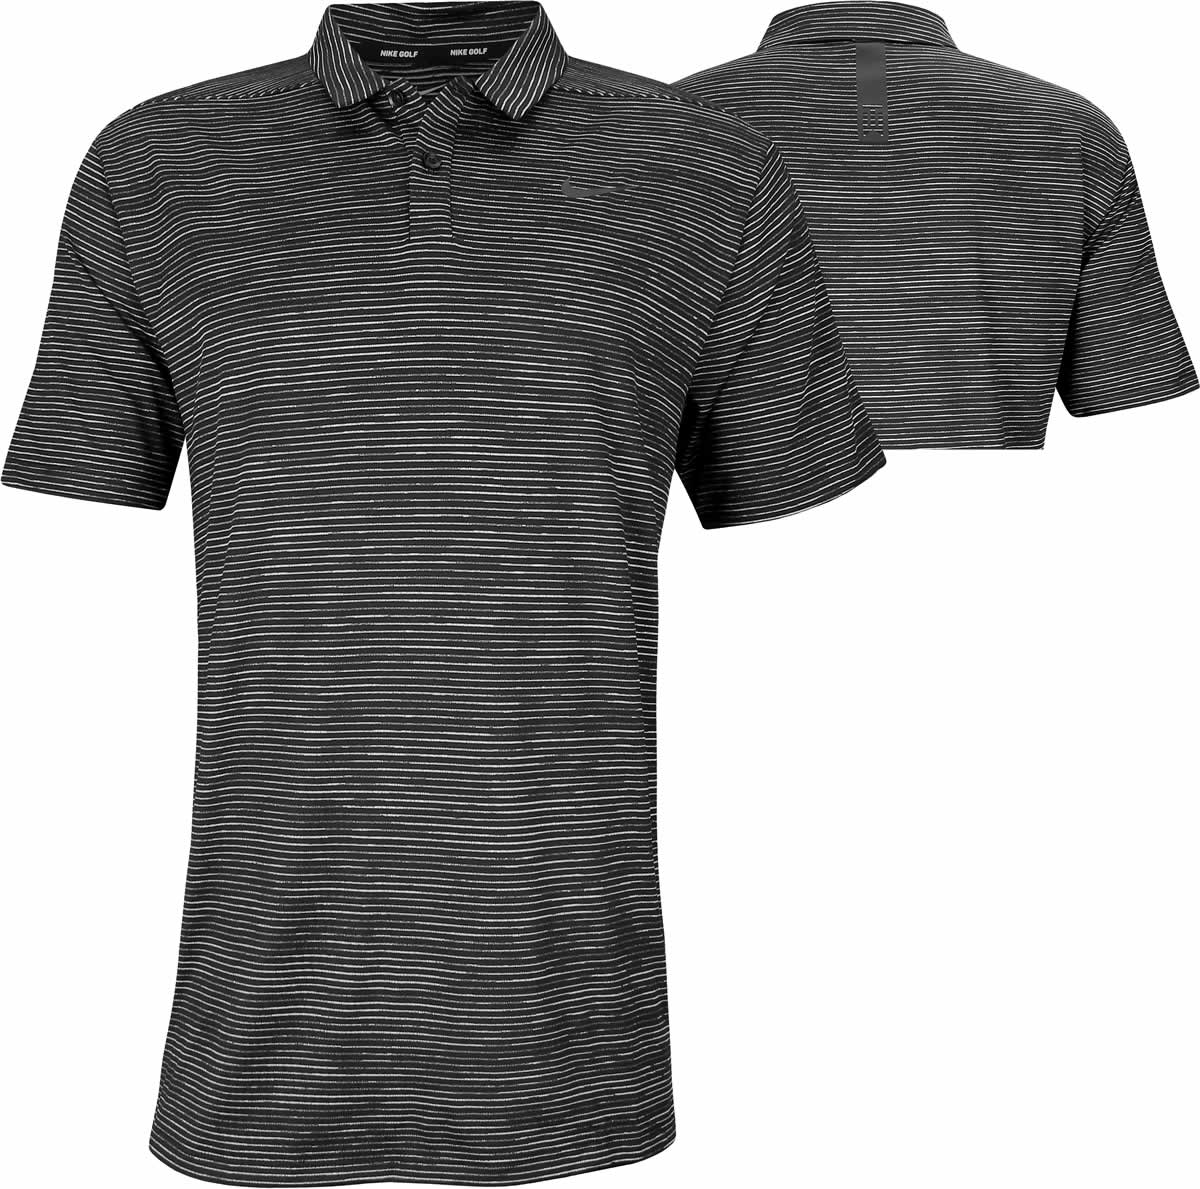 c6b862b7af5d0 Tiger Woods Brand Shirts – EDGE Engineering and Consulting Limited